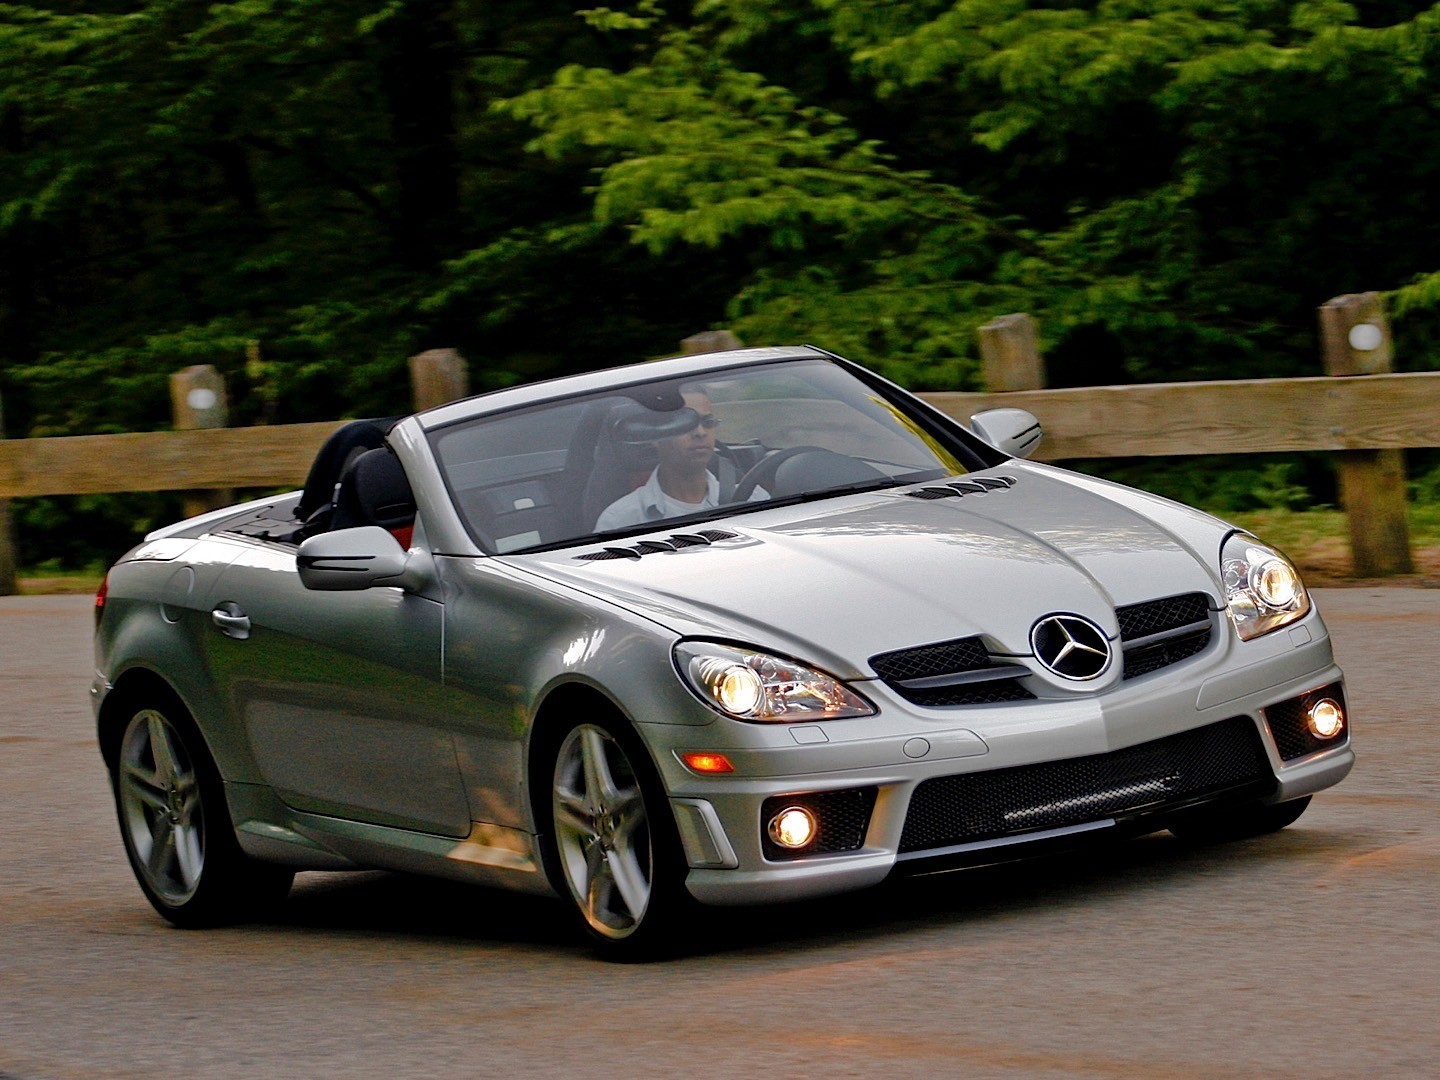 MERCEDES BENZ SLK 55 AMG (R171) specs & photos - 2008 ...